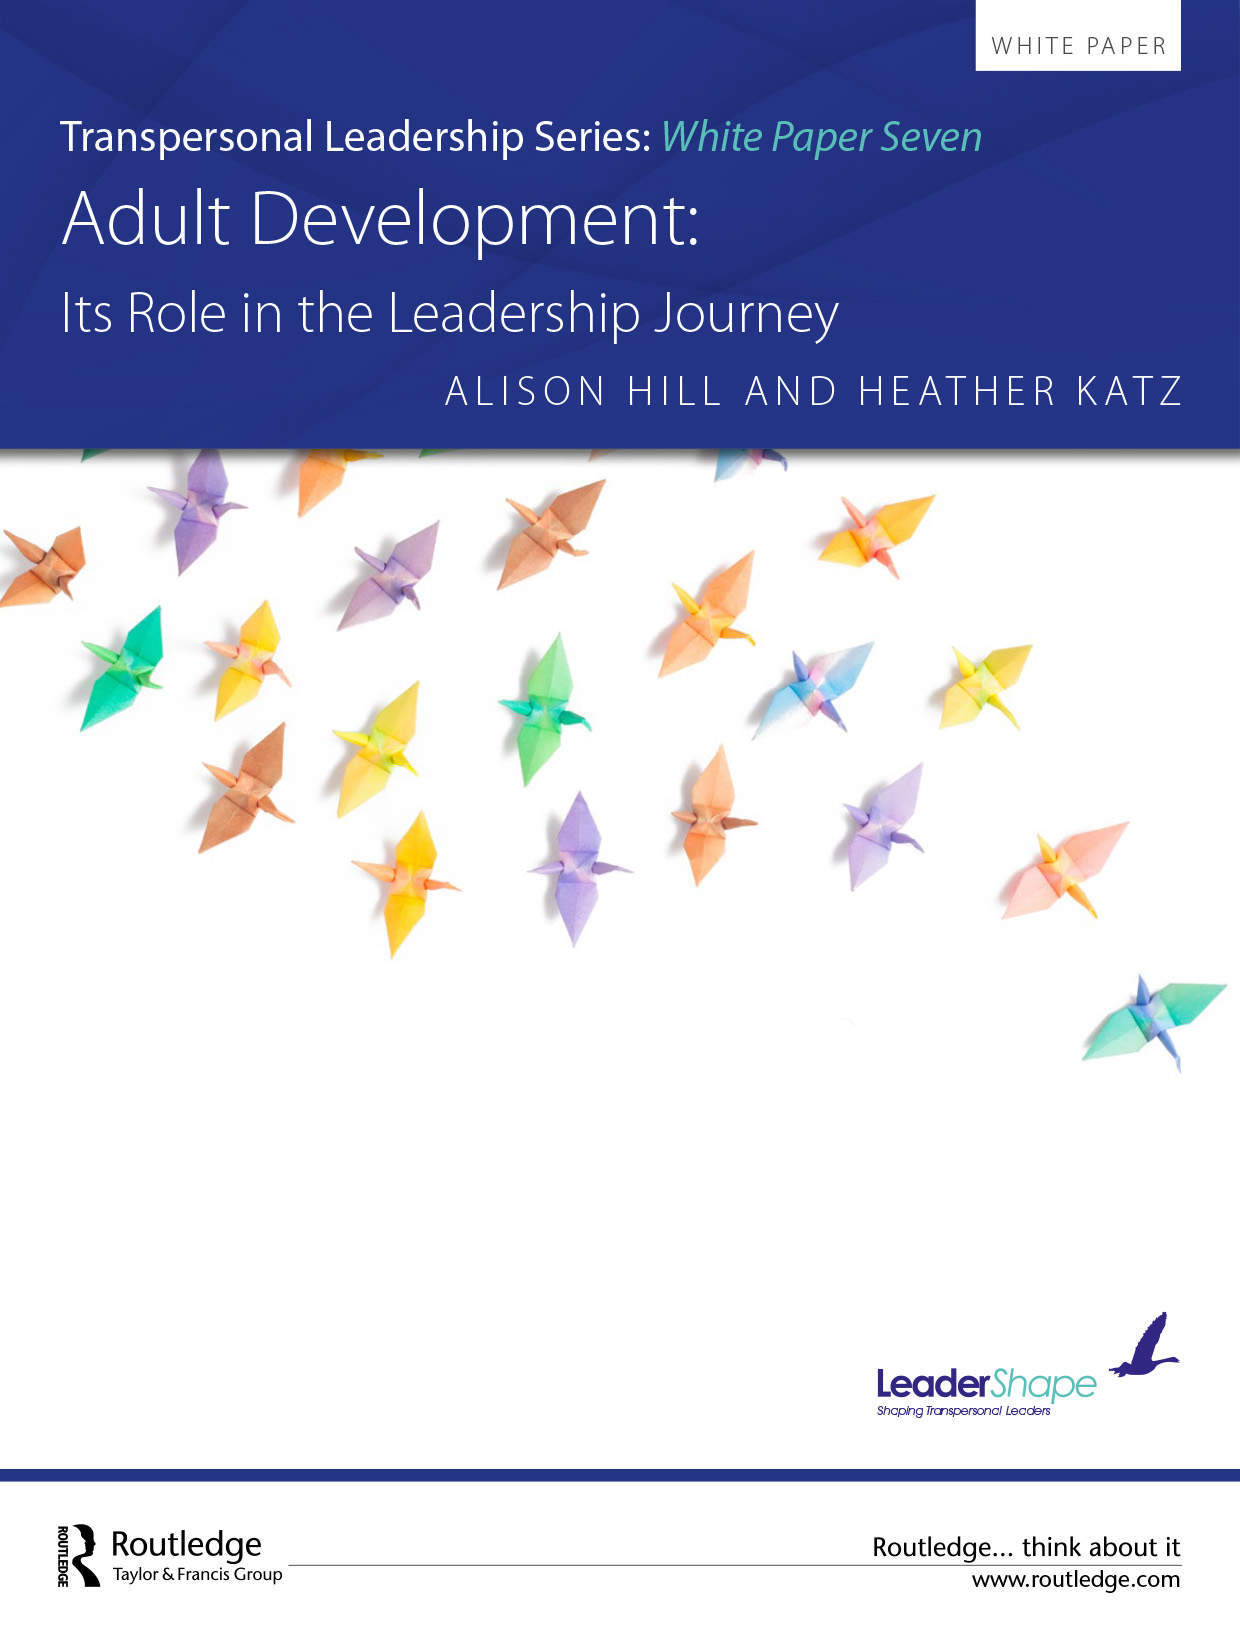 Transpersonal Leadership White Paper Series: Adult Development; It's Role in the Leadership Journey